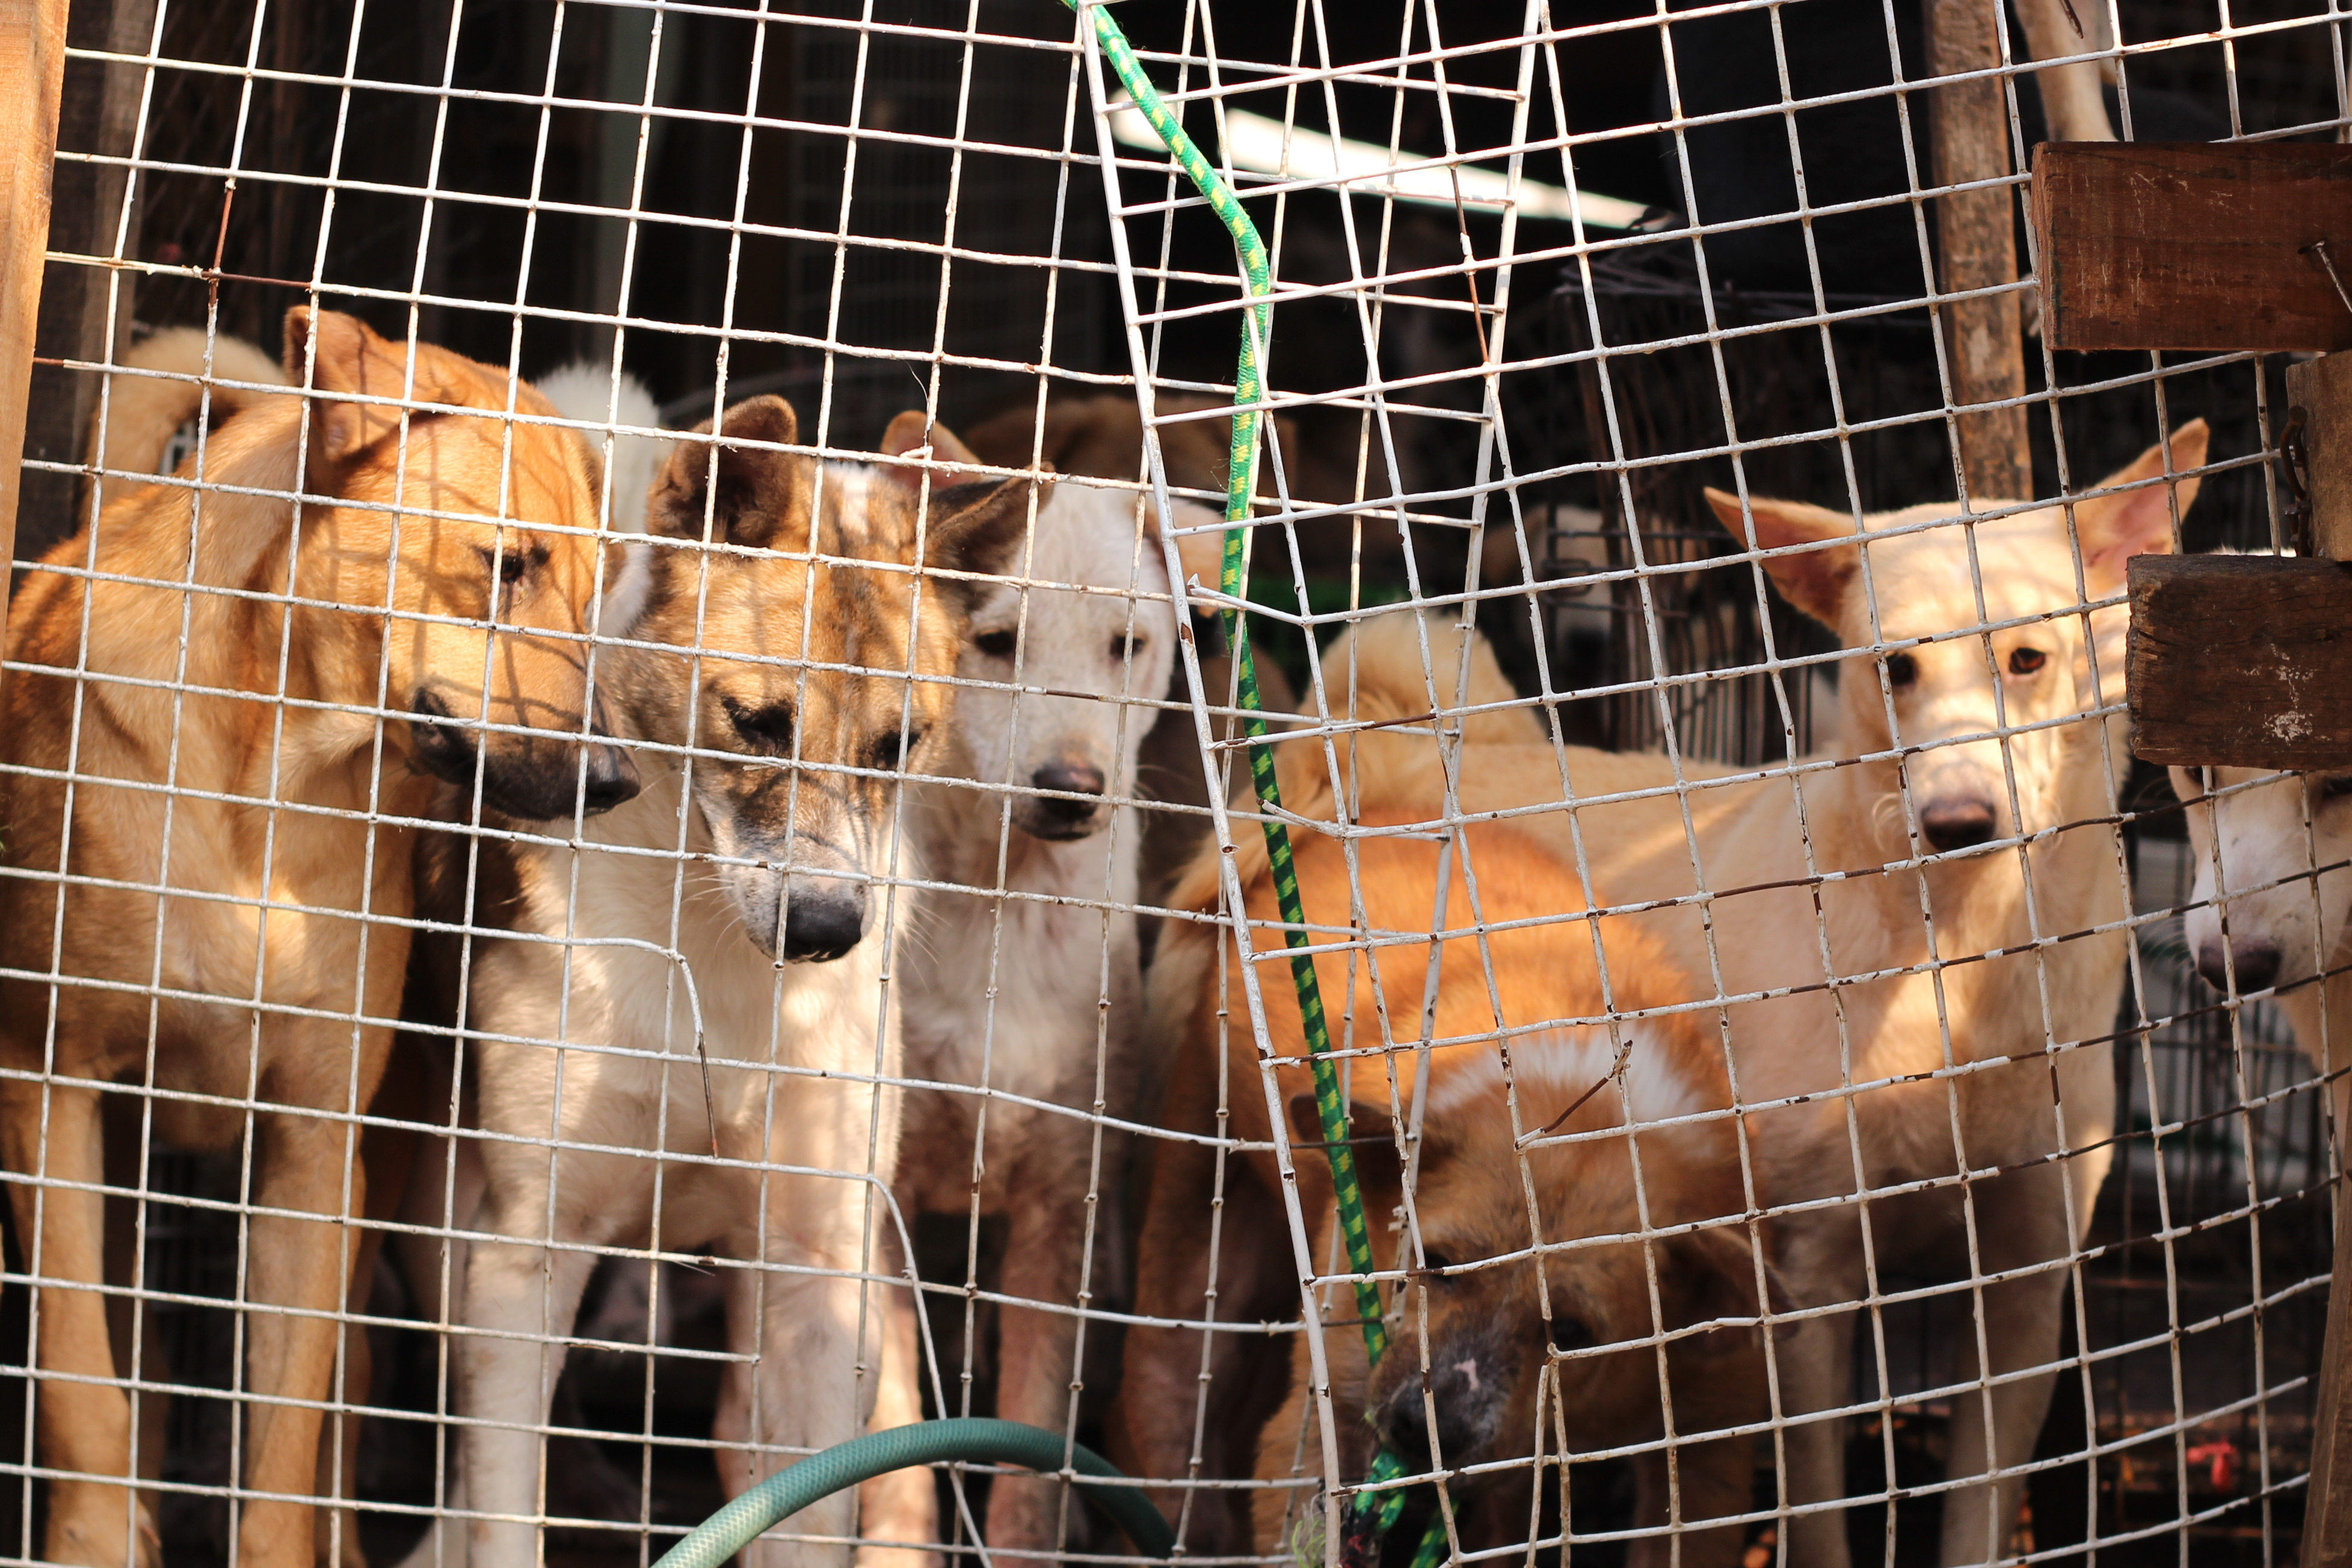 Dogs in cage to be sold for meat